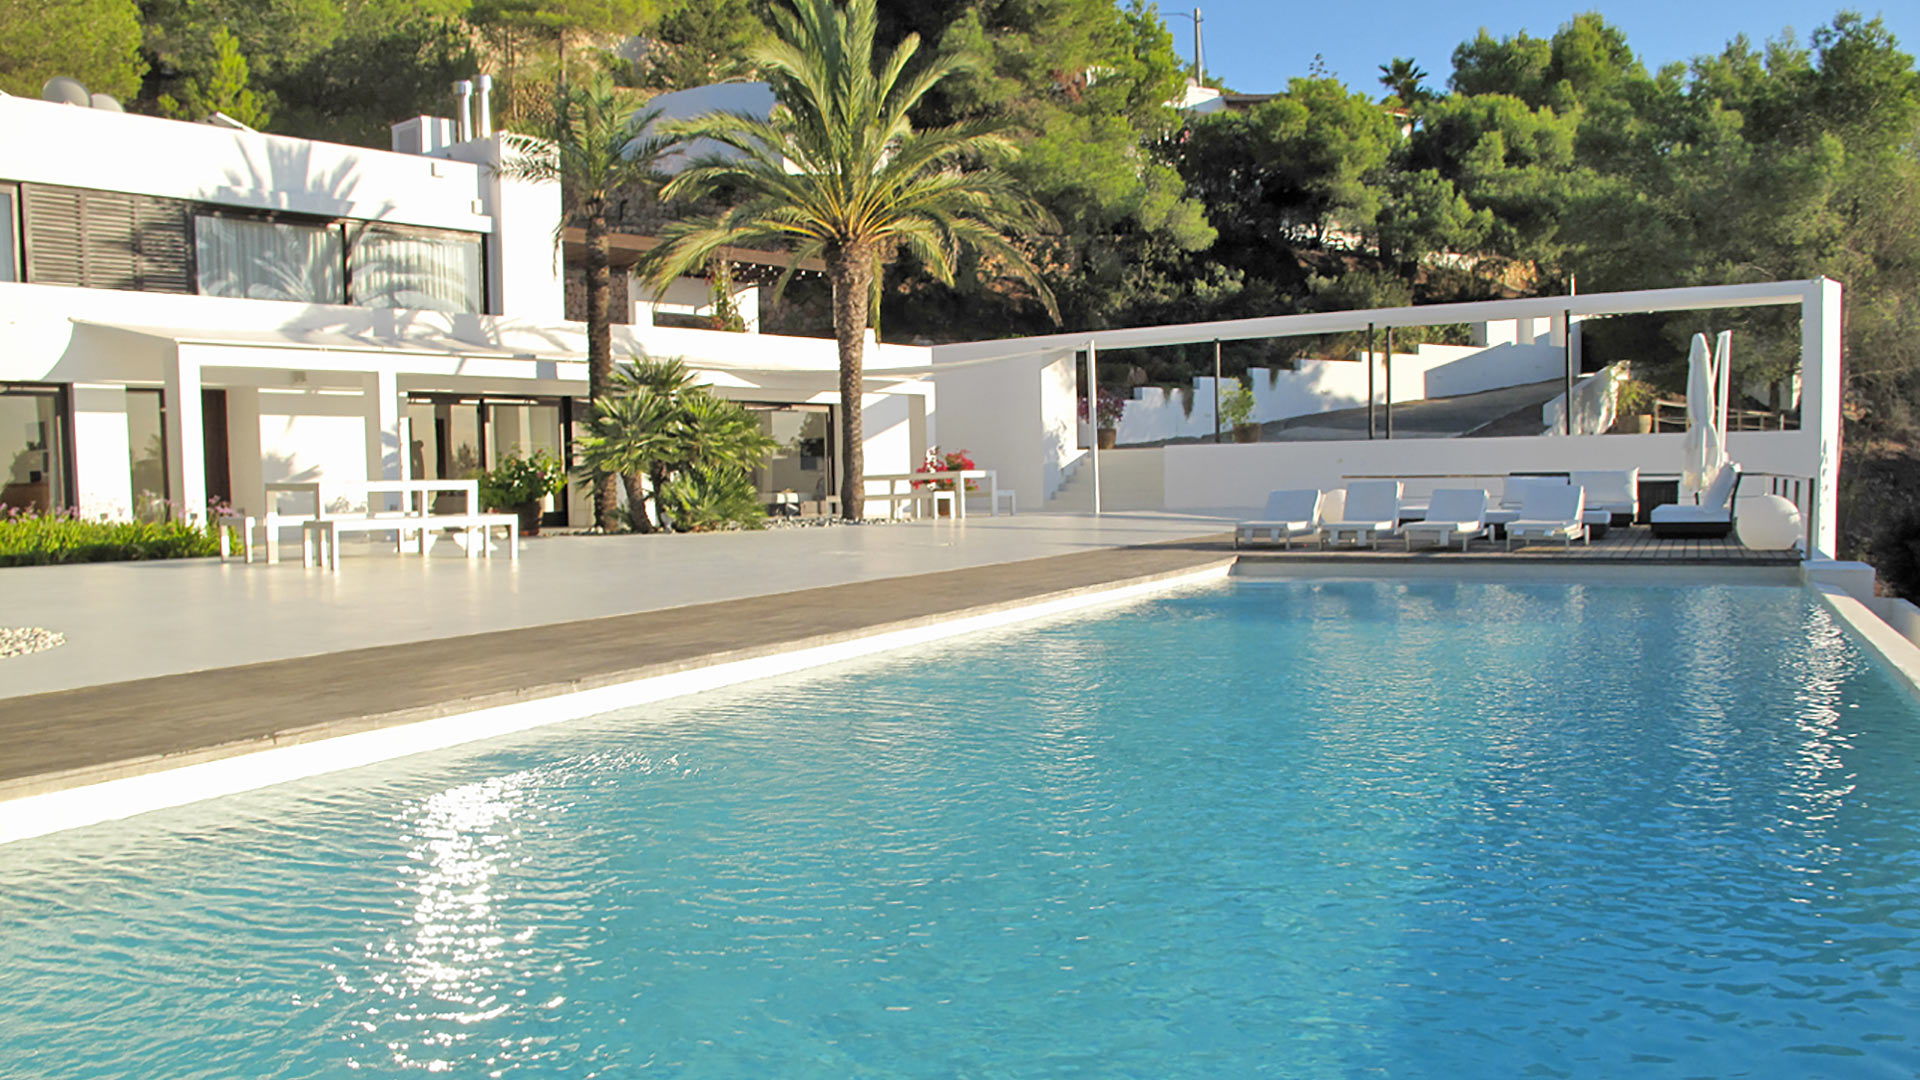 Pool Im Garten Hygiene Villa 798 Villa Rental In Ibiza Ibiza South Ibiza House Renting